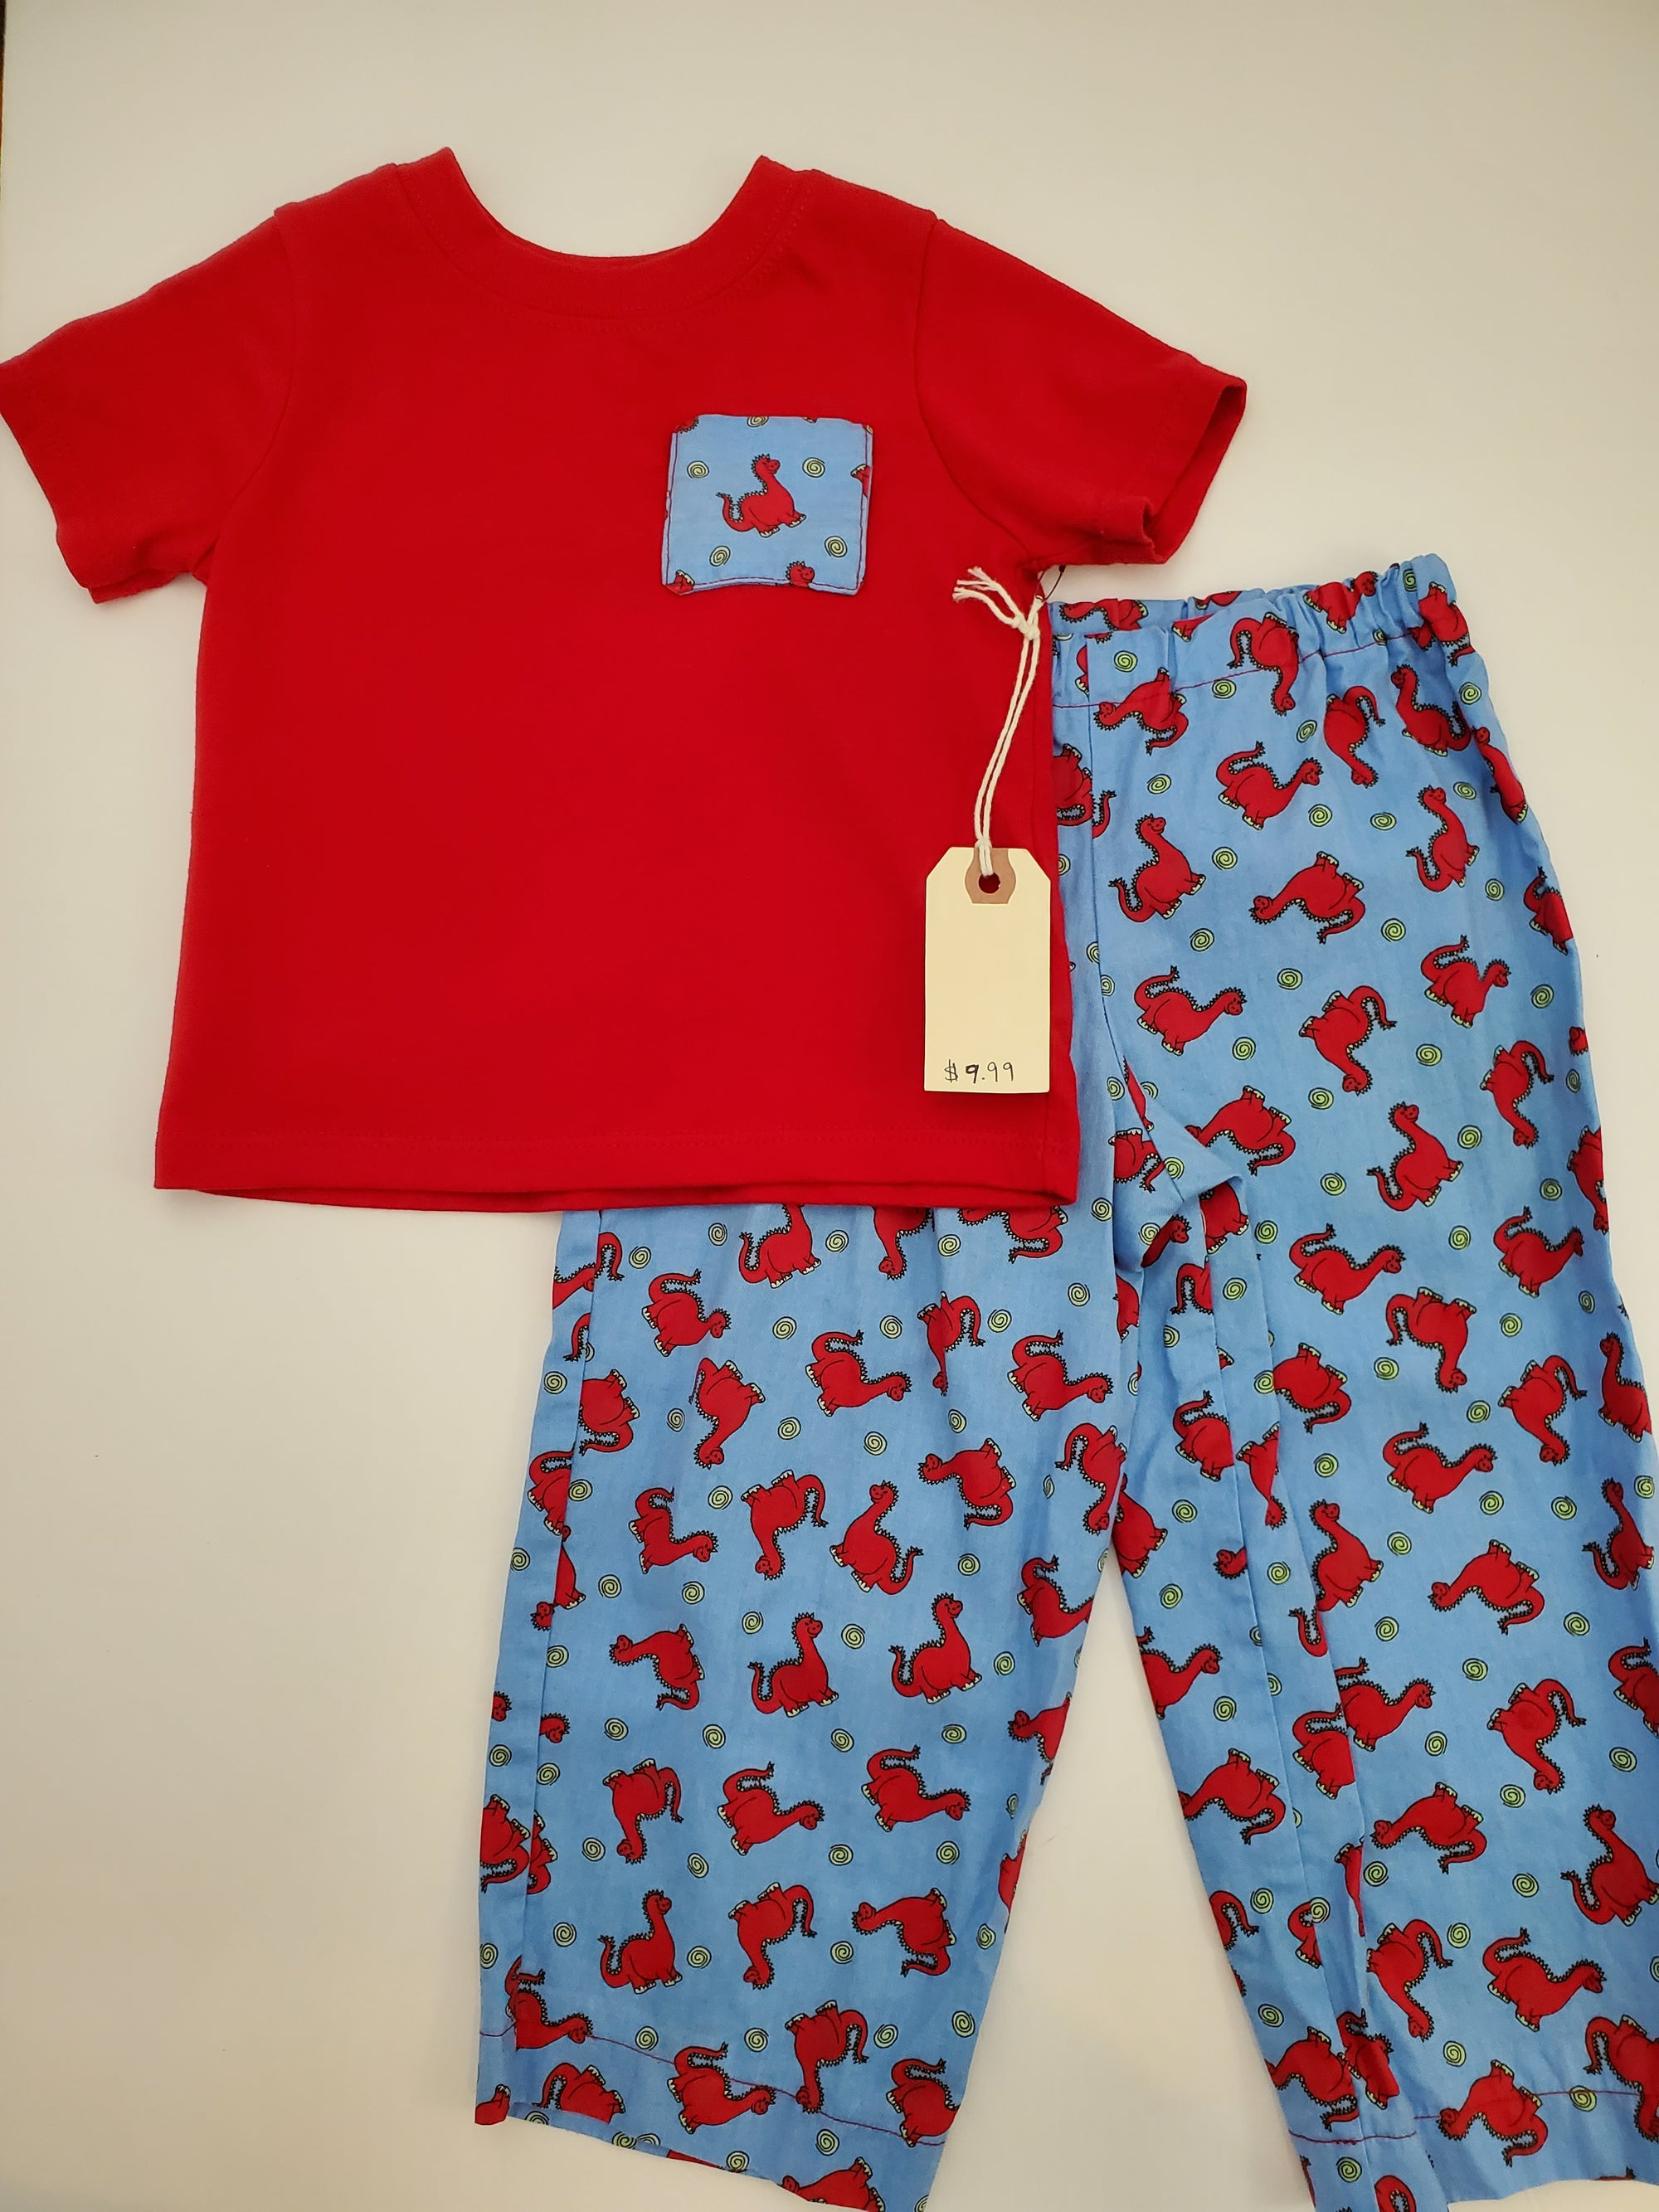 Resale 2T Shirt & Lightweight Pants Set - Red / Blue Dino